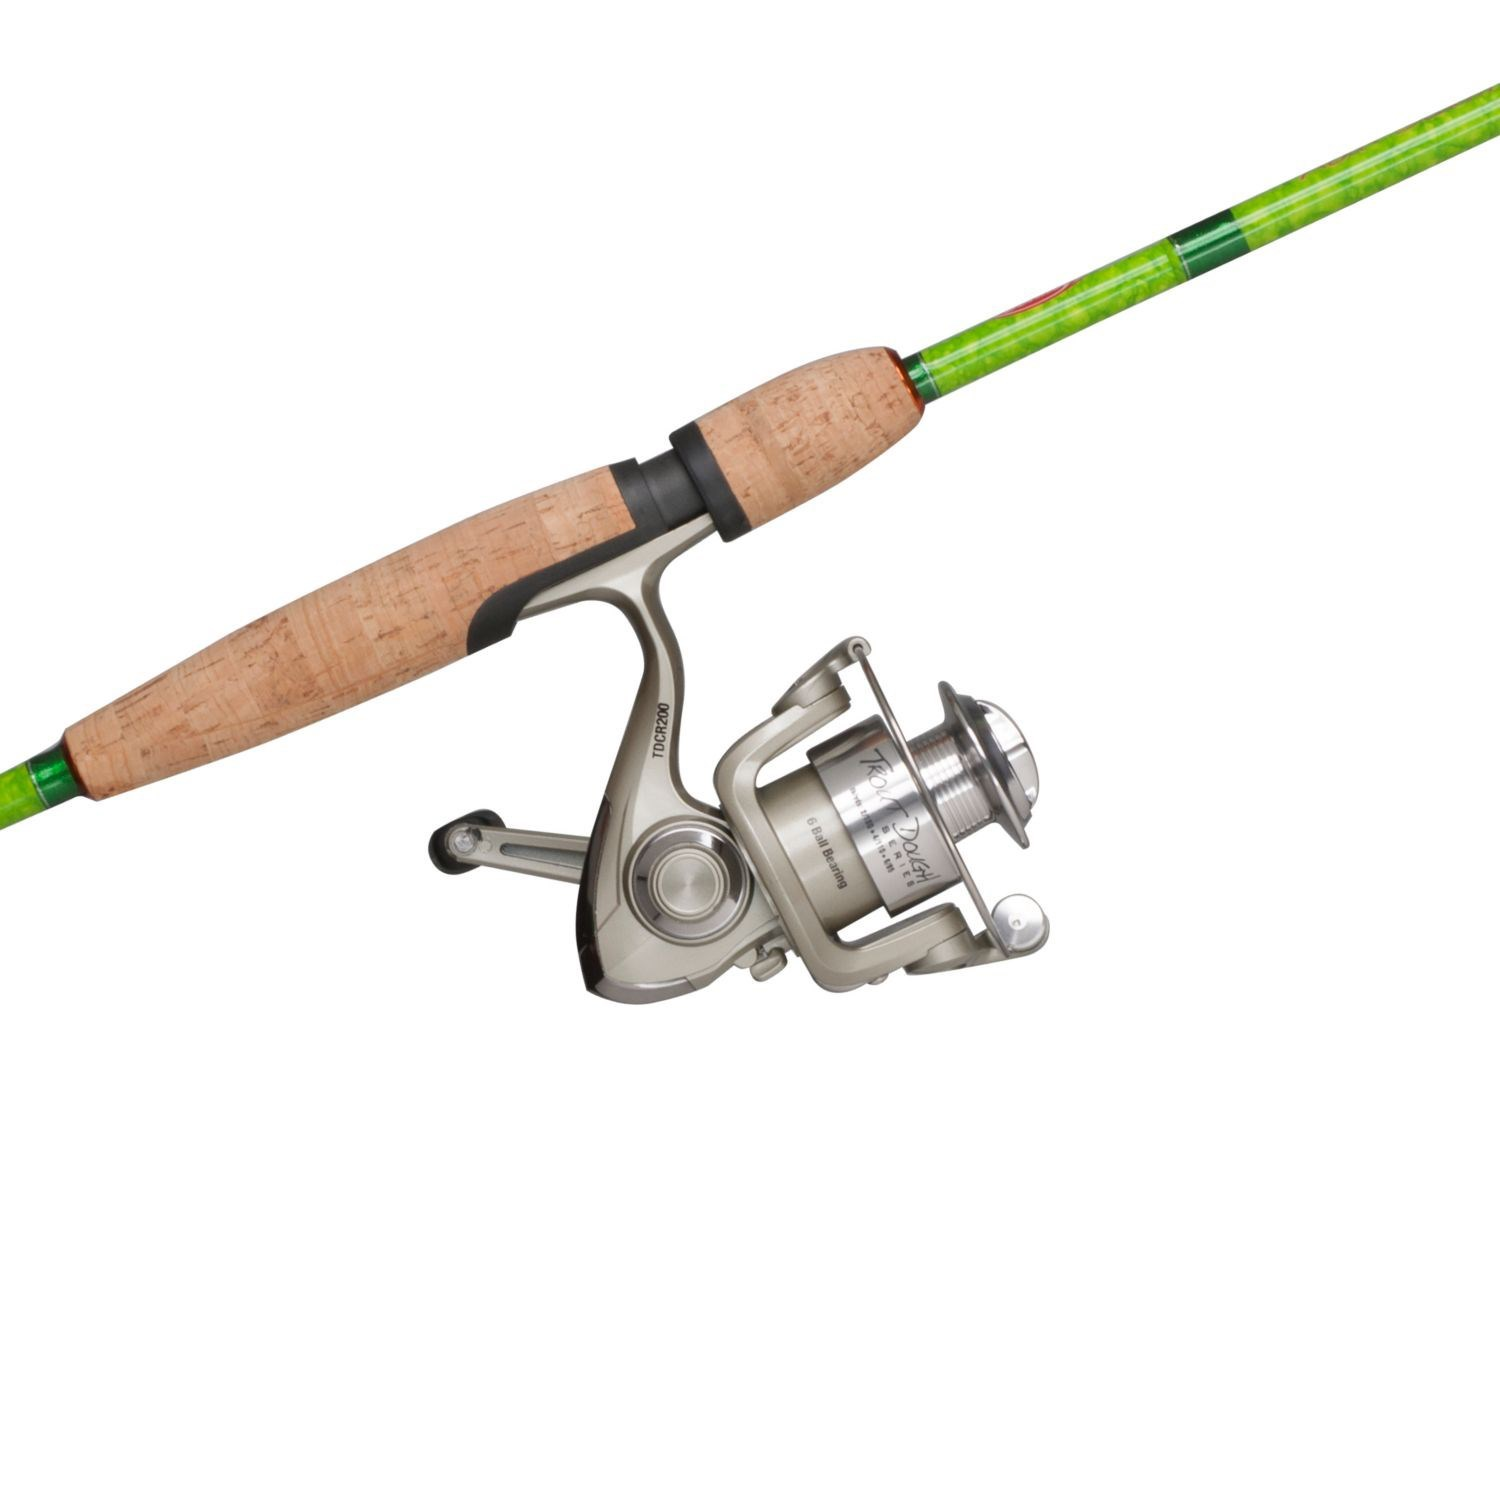 Berkley trout dough spinning rod and reel combo 2 piece for Trout fishing rod and reel